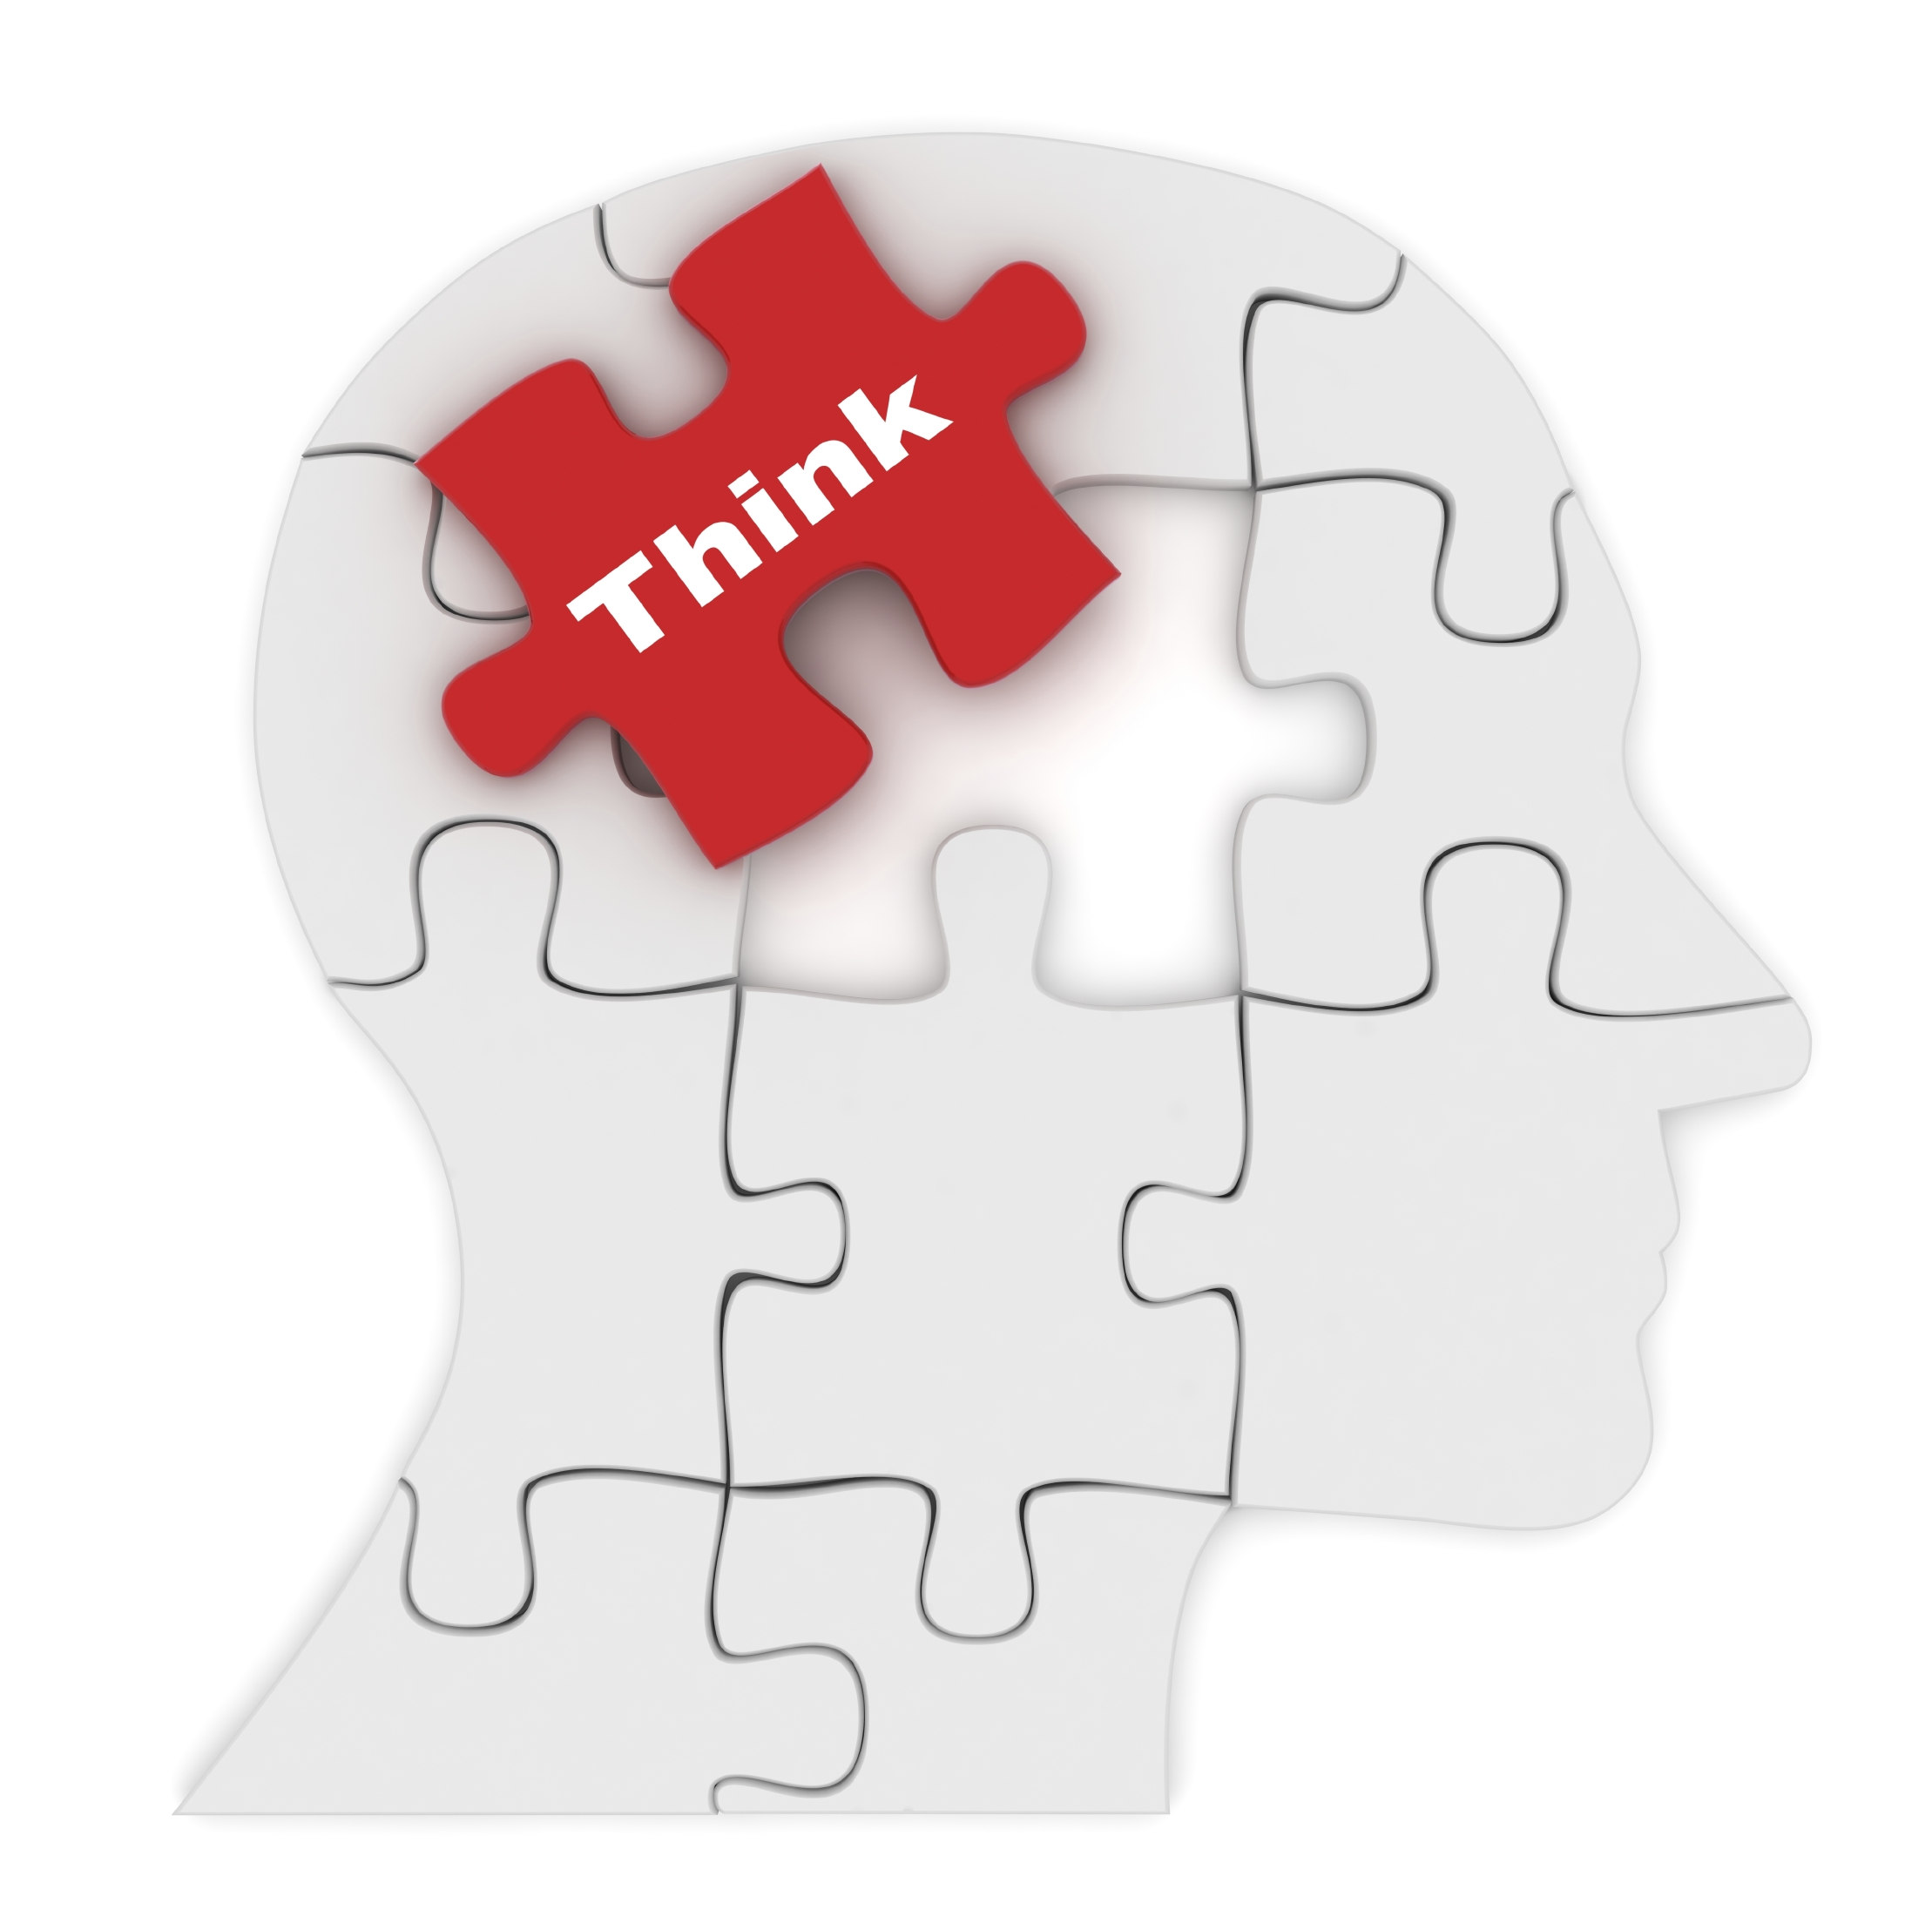 Six Thinking Hats Equals Critical Thinking For Student